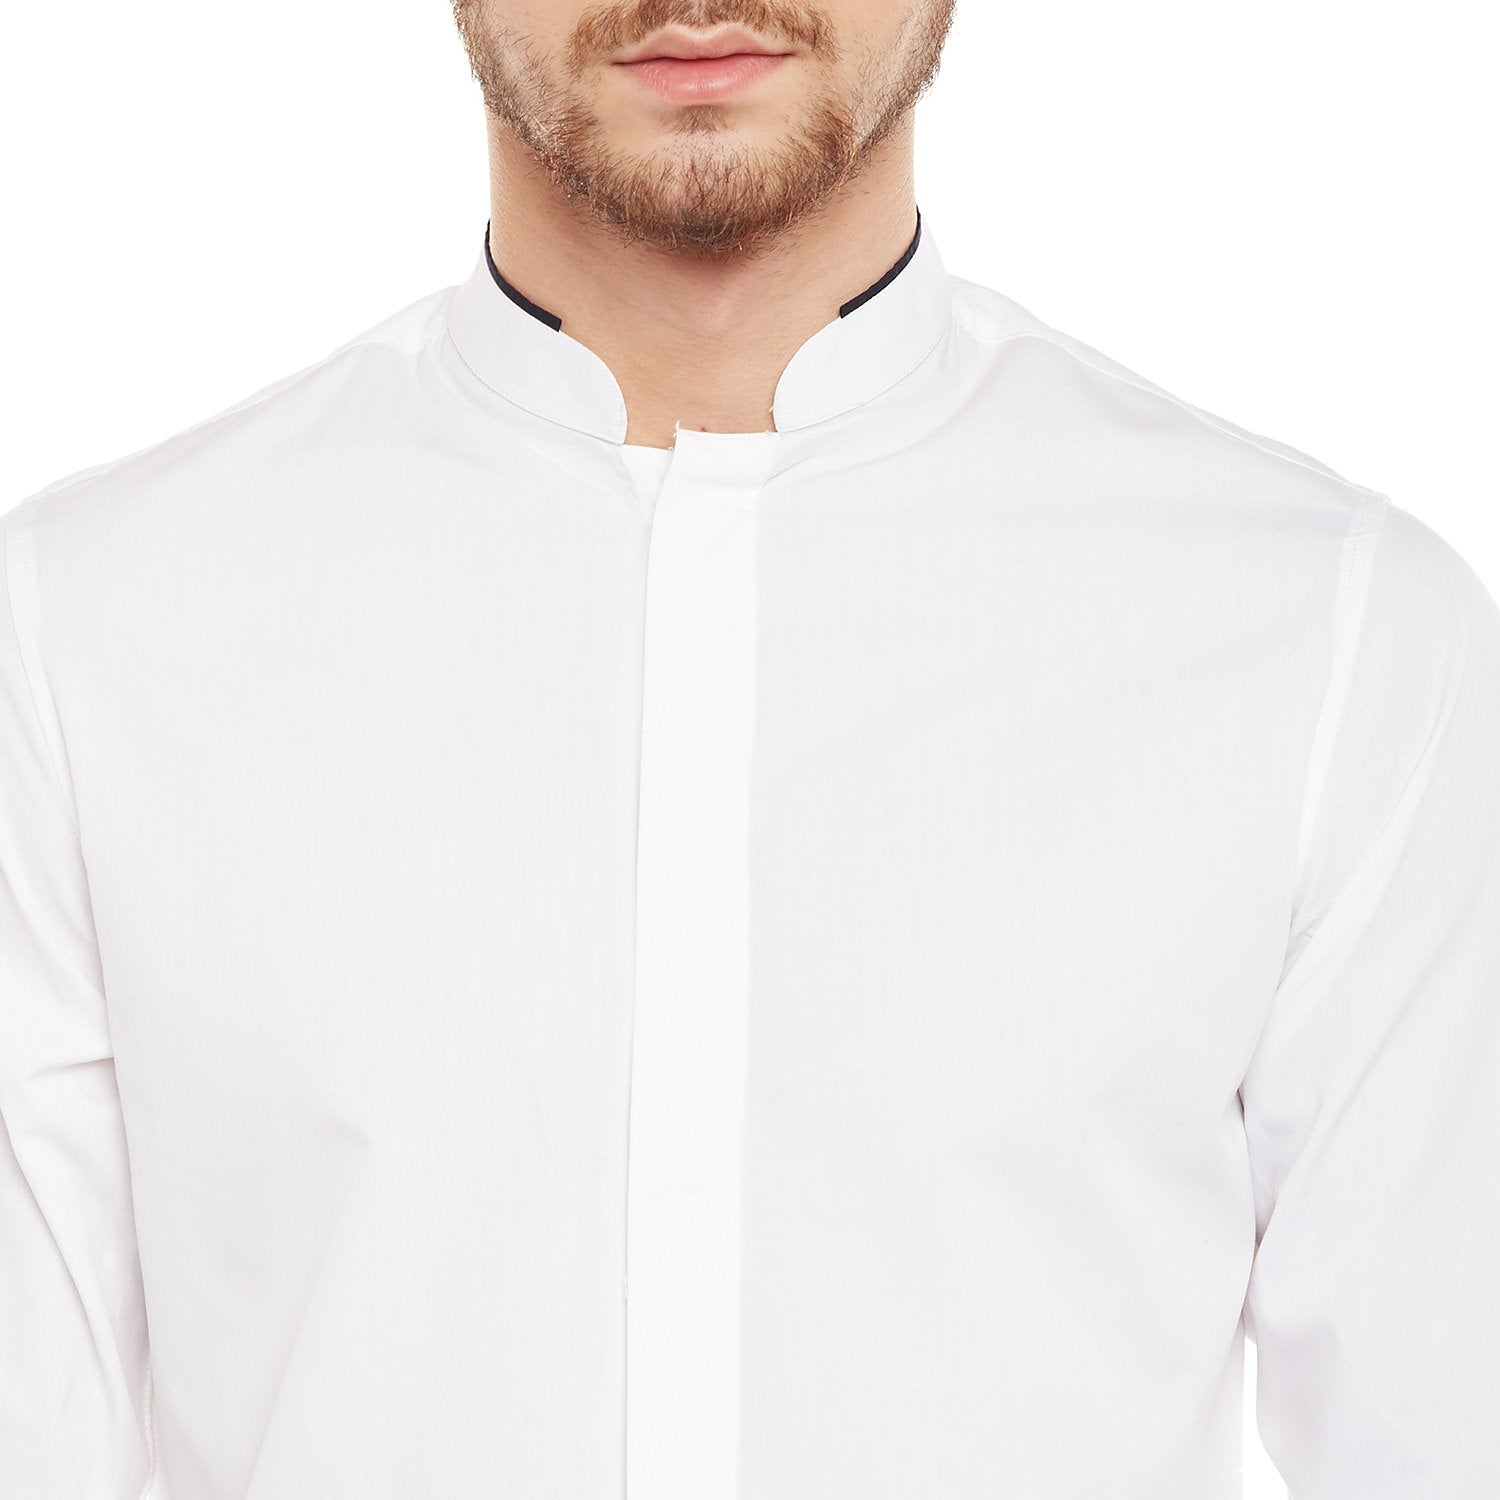 Atorse Mens Full Sleeves Shirt With Band Collar With Conceal